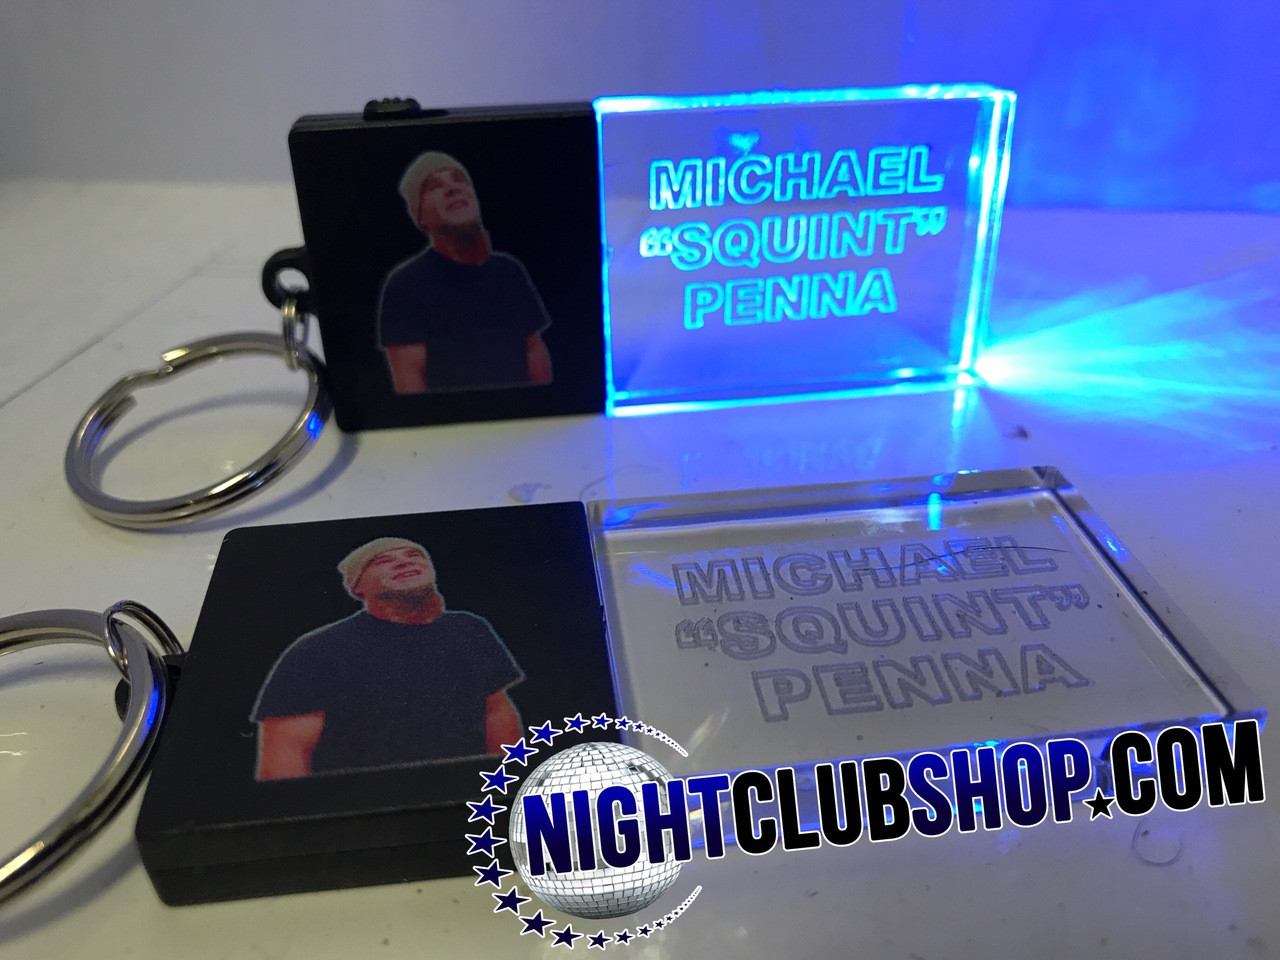 Beam,LED,Keychain,Key,chain,LED keychain, custom, BEAM, dual, print,engraved, logo,text, laser engraved,personalized,promo,merch,fundraiser,nightclub,fund raiser,RIP Squint